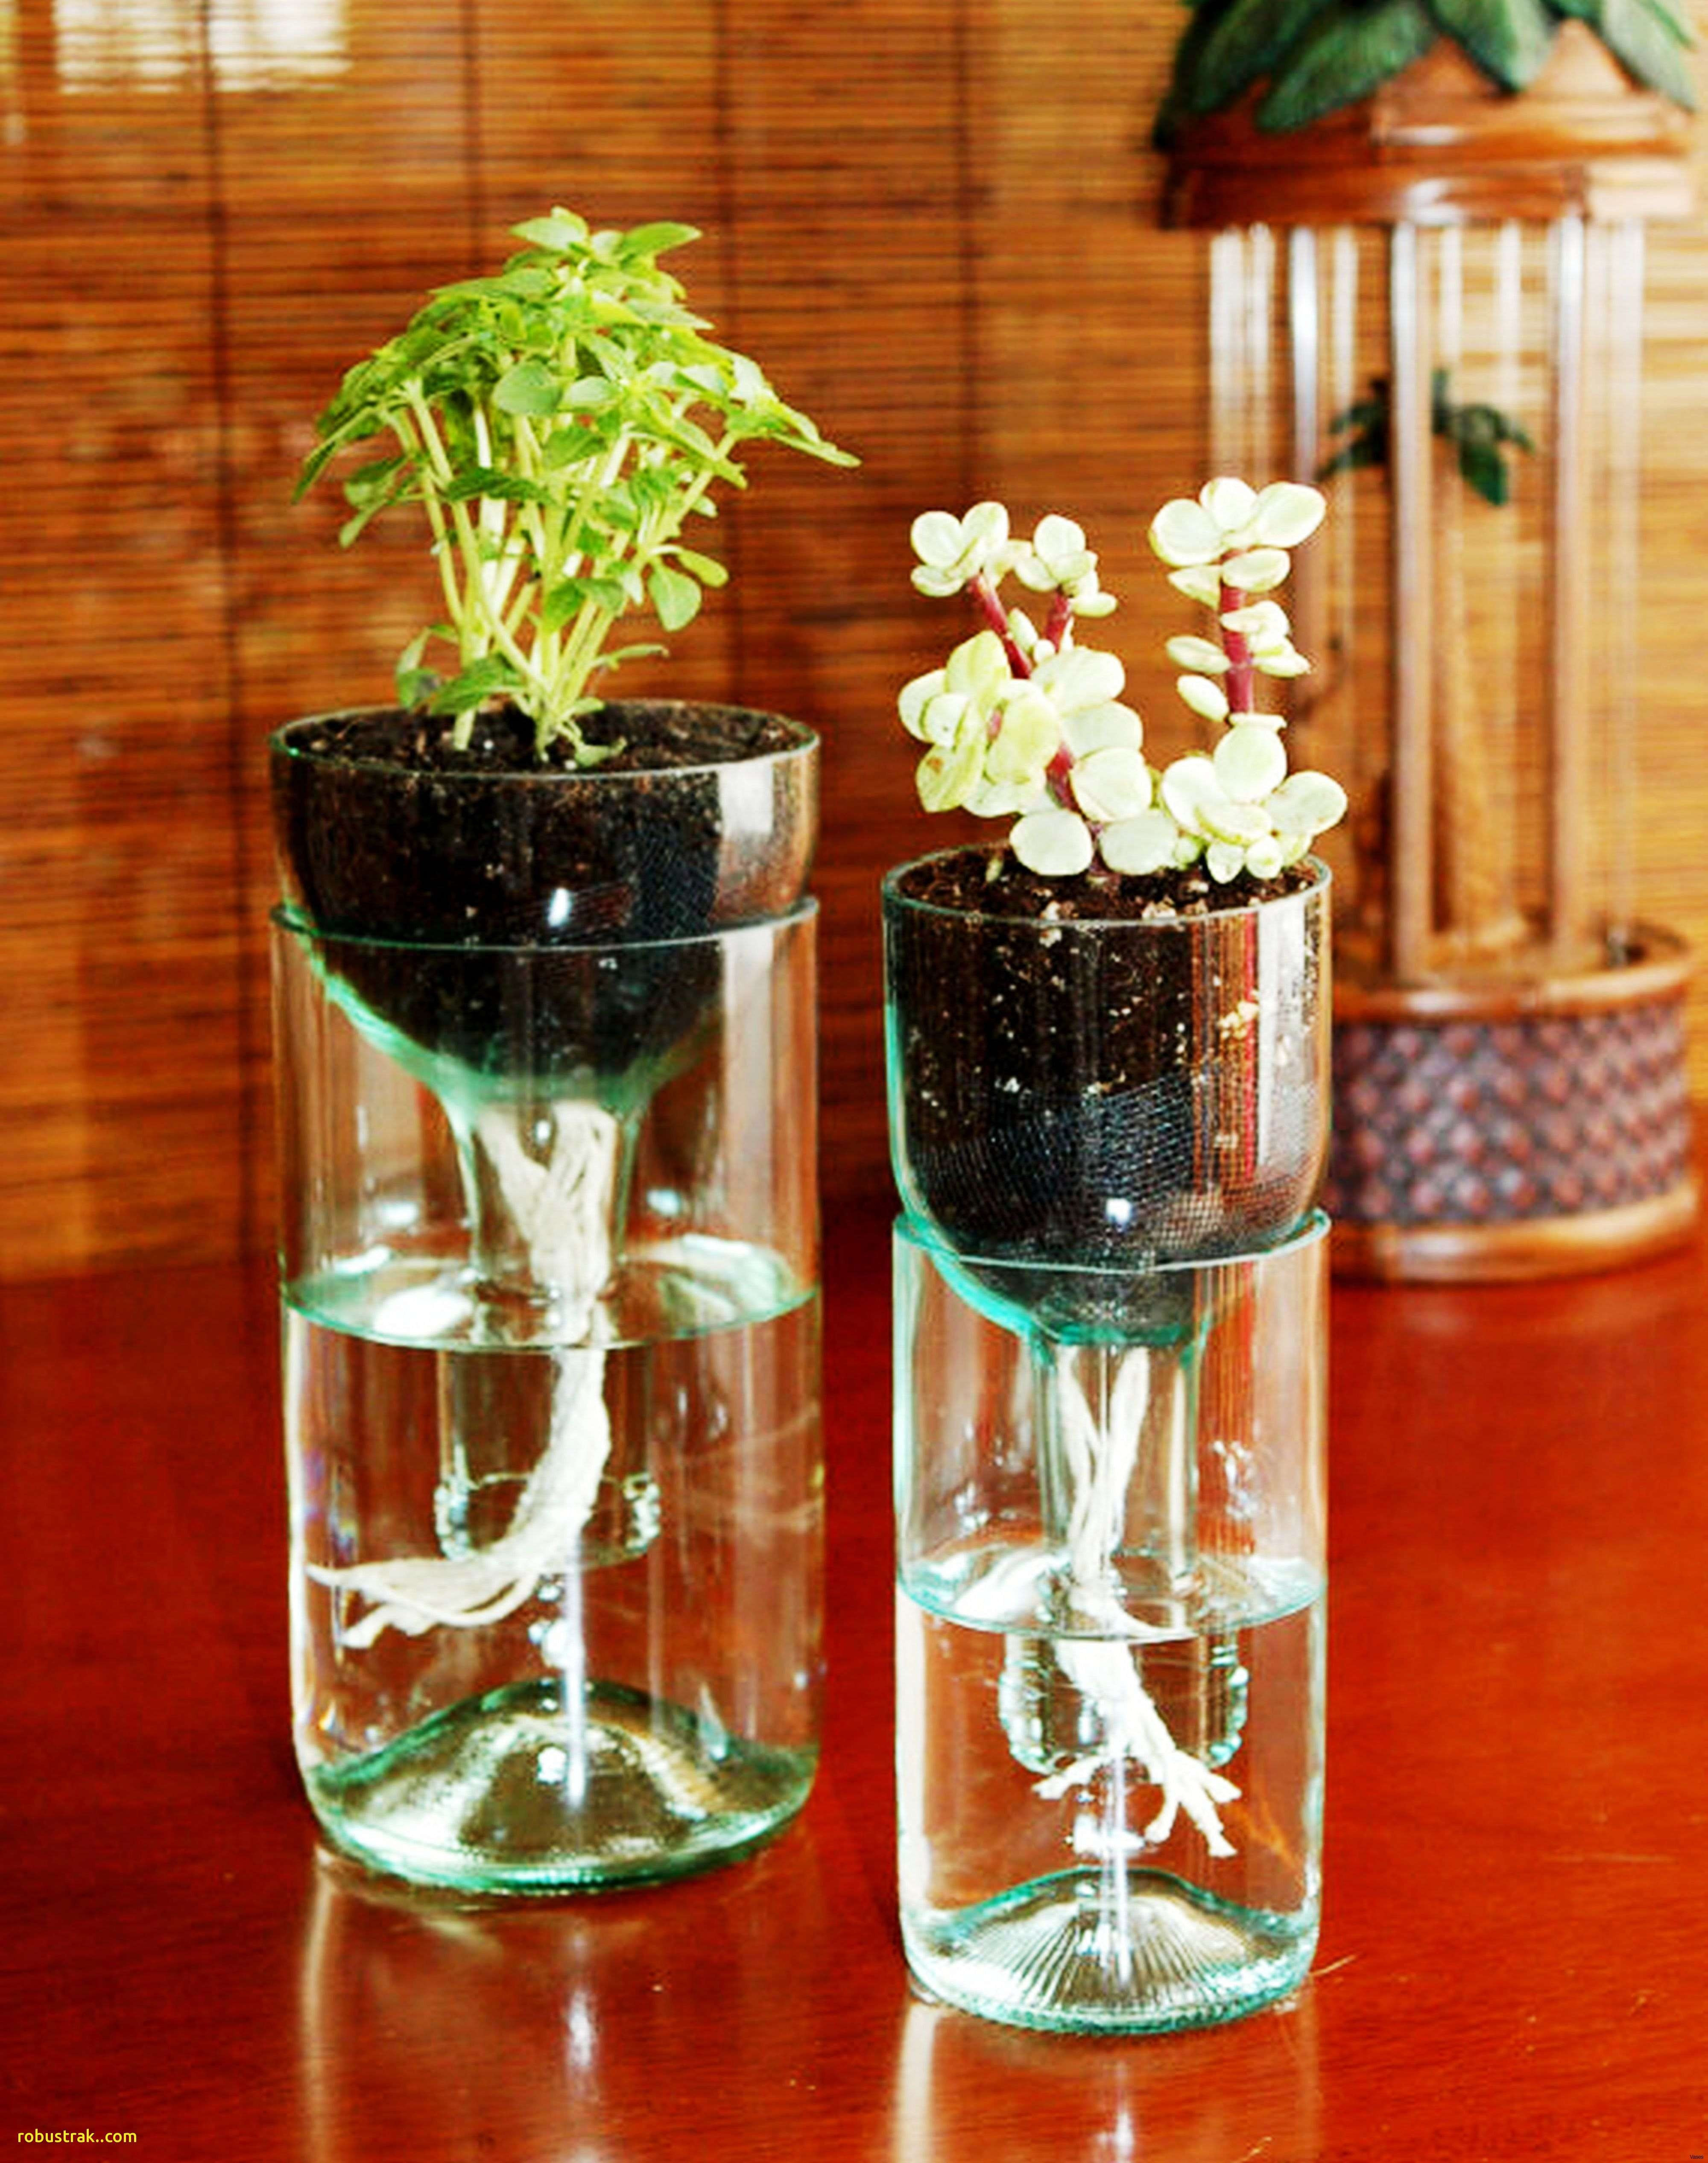 glass vase with hydrangea of 20 unique glass bowl centerpiece decorating ideas badt us in glass bowl centerpiece decorating ideas awesome unique glass bowl centerpiece decorating ideas of glass bowl centerpiece decorating ideas